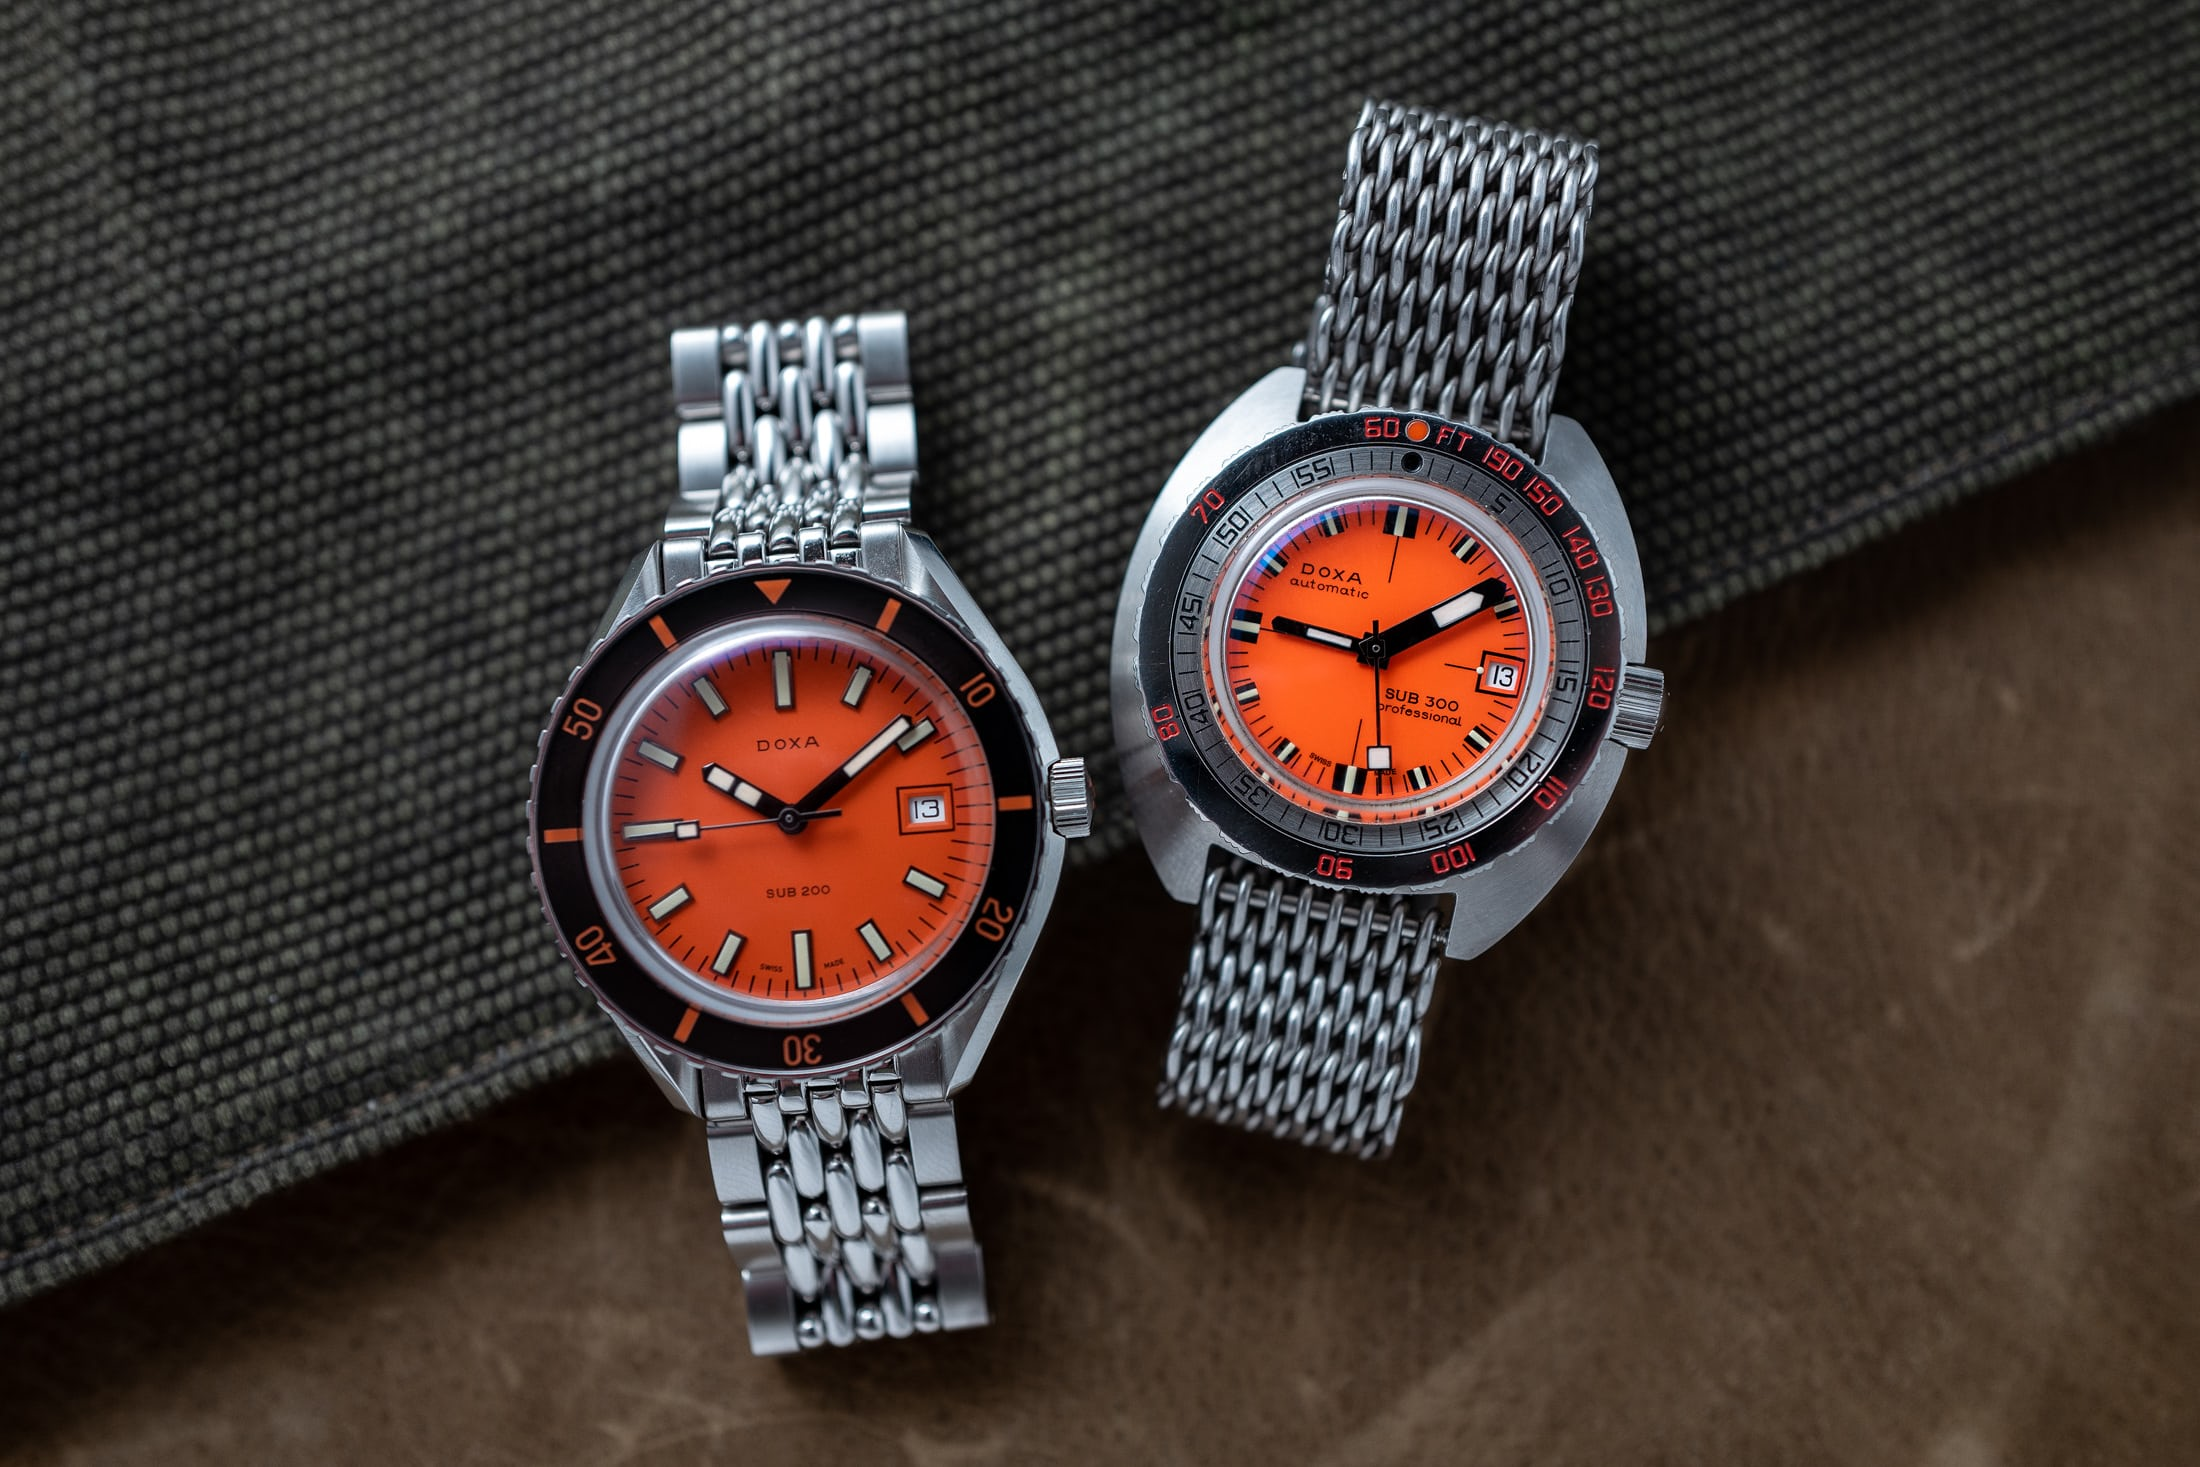 RECOMMENDED READING: Is the DOXA SUB 200 Professional good value?